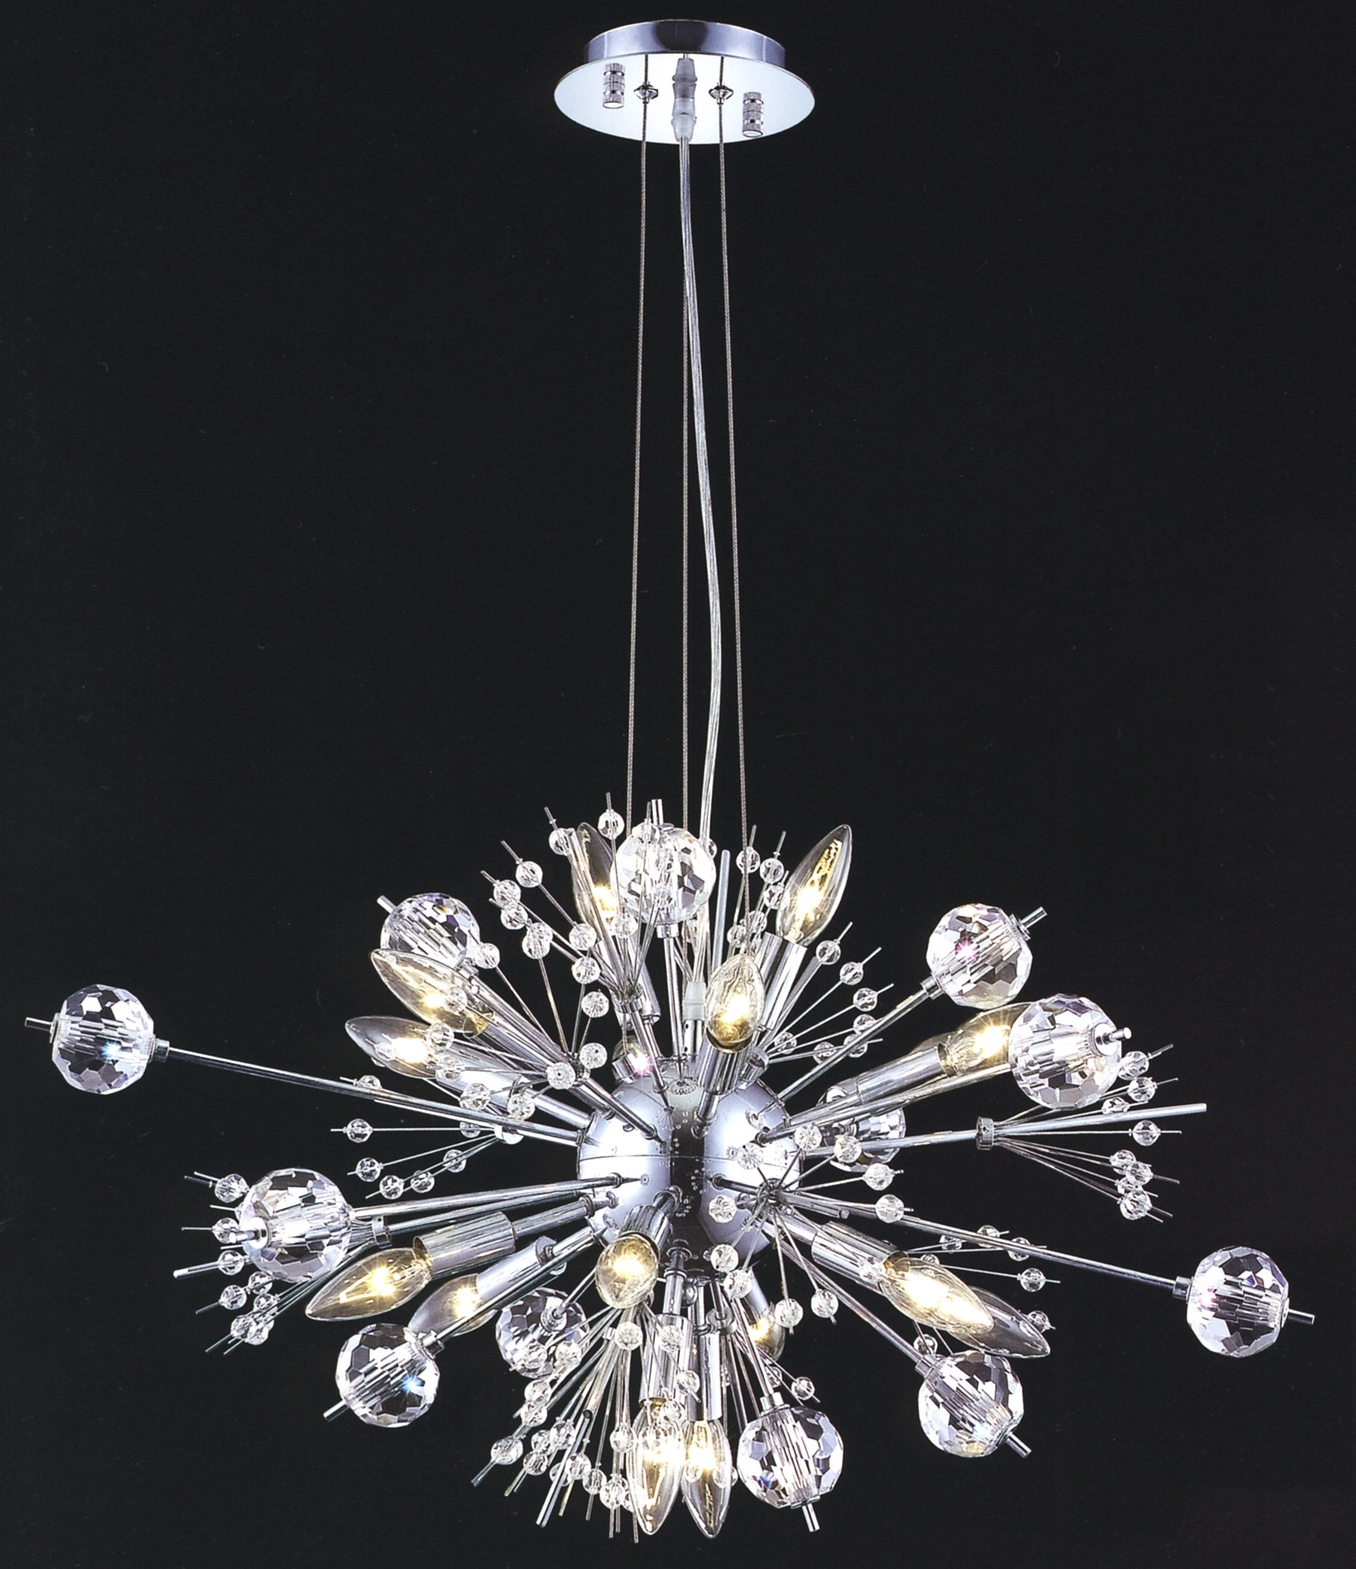 Small Chandeliers In Well Known Lighting 3400D24C/ec Crystal Cyclone Small Chandelier (View 15 of 20)